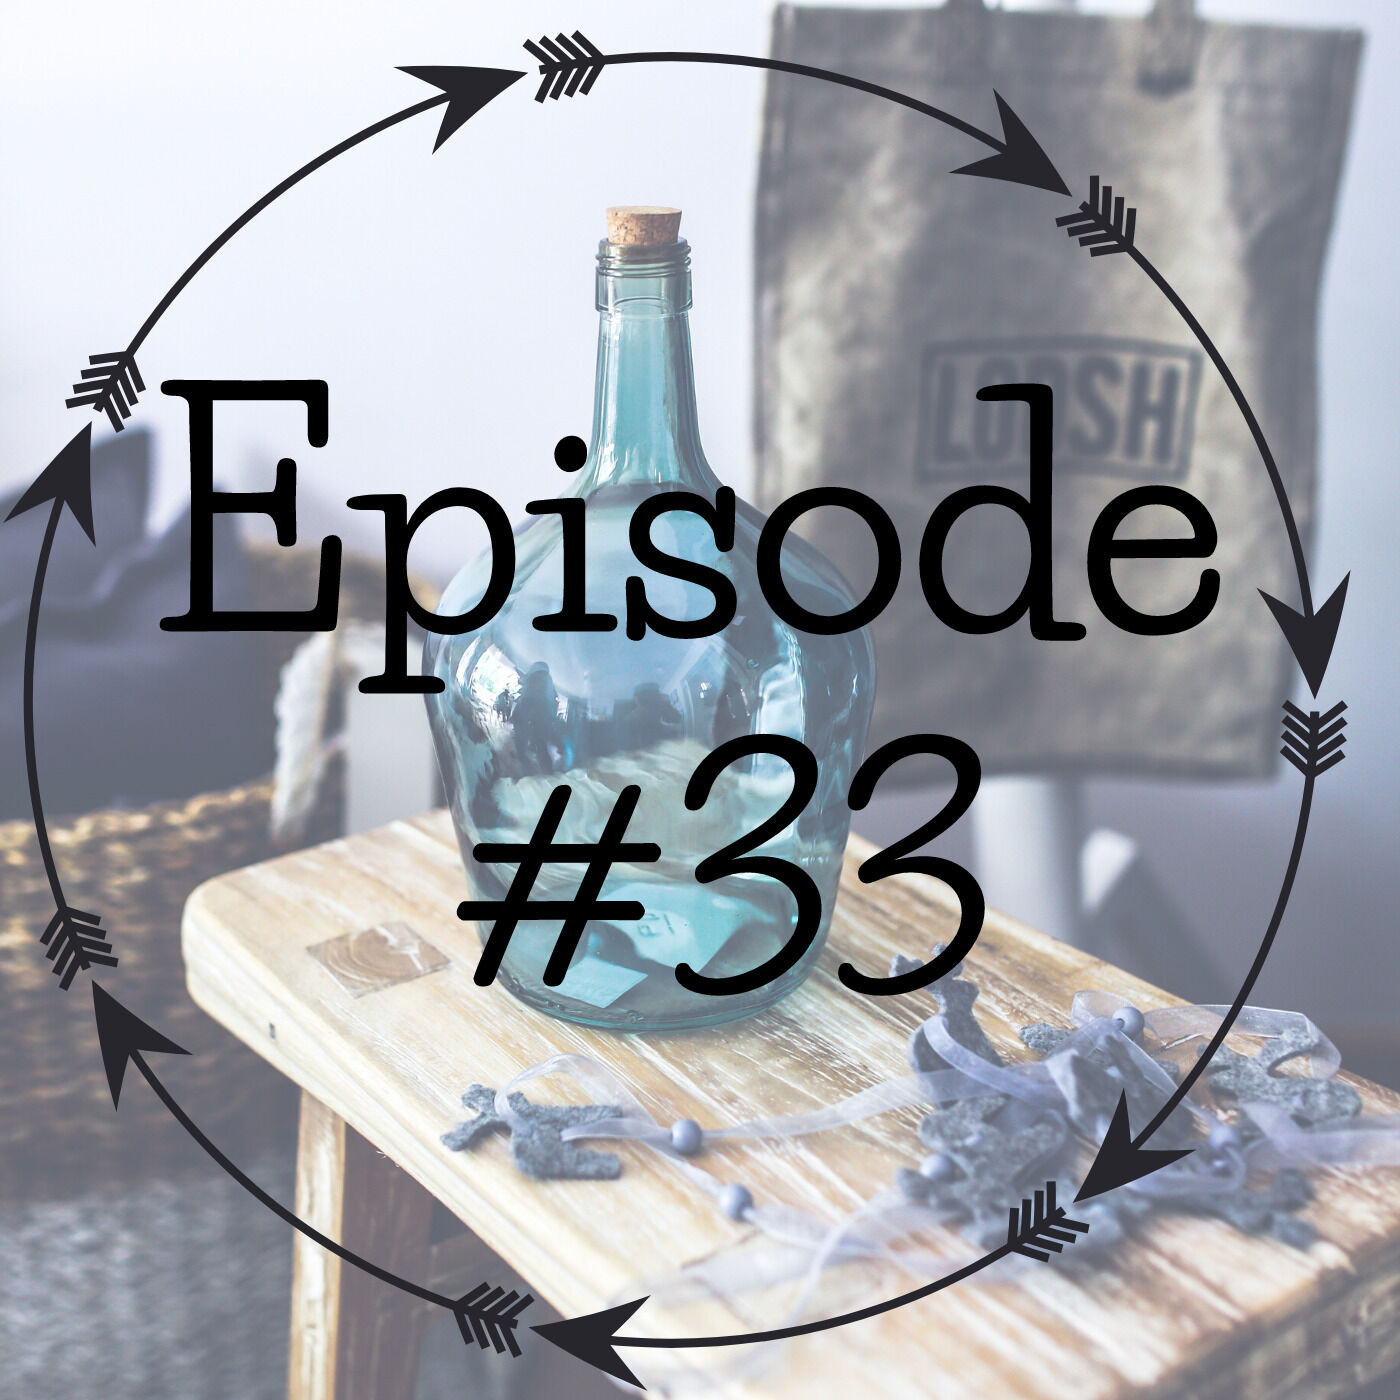 Episode #33: A dilemma about doing in person postnatal support and a question about offering doula support for free